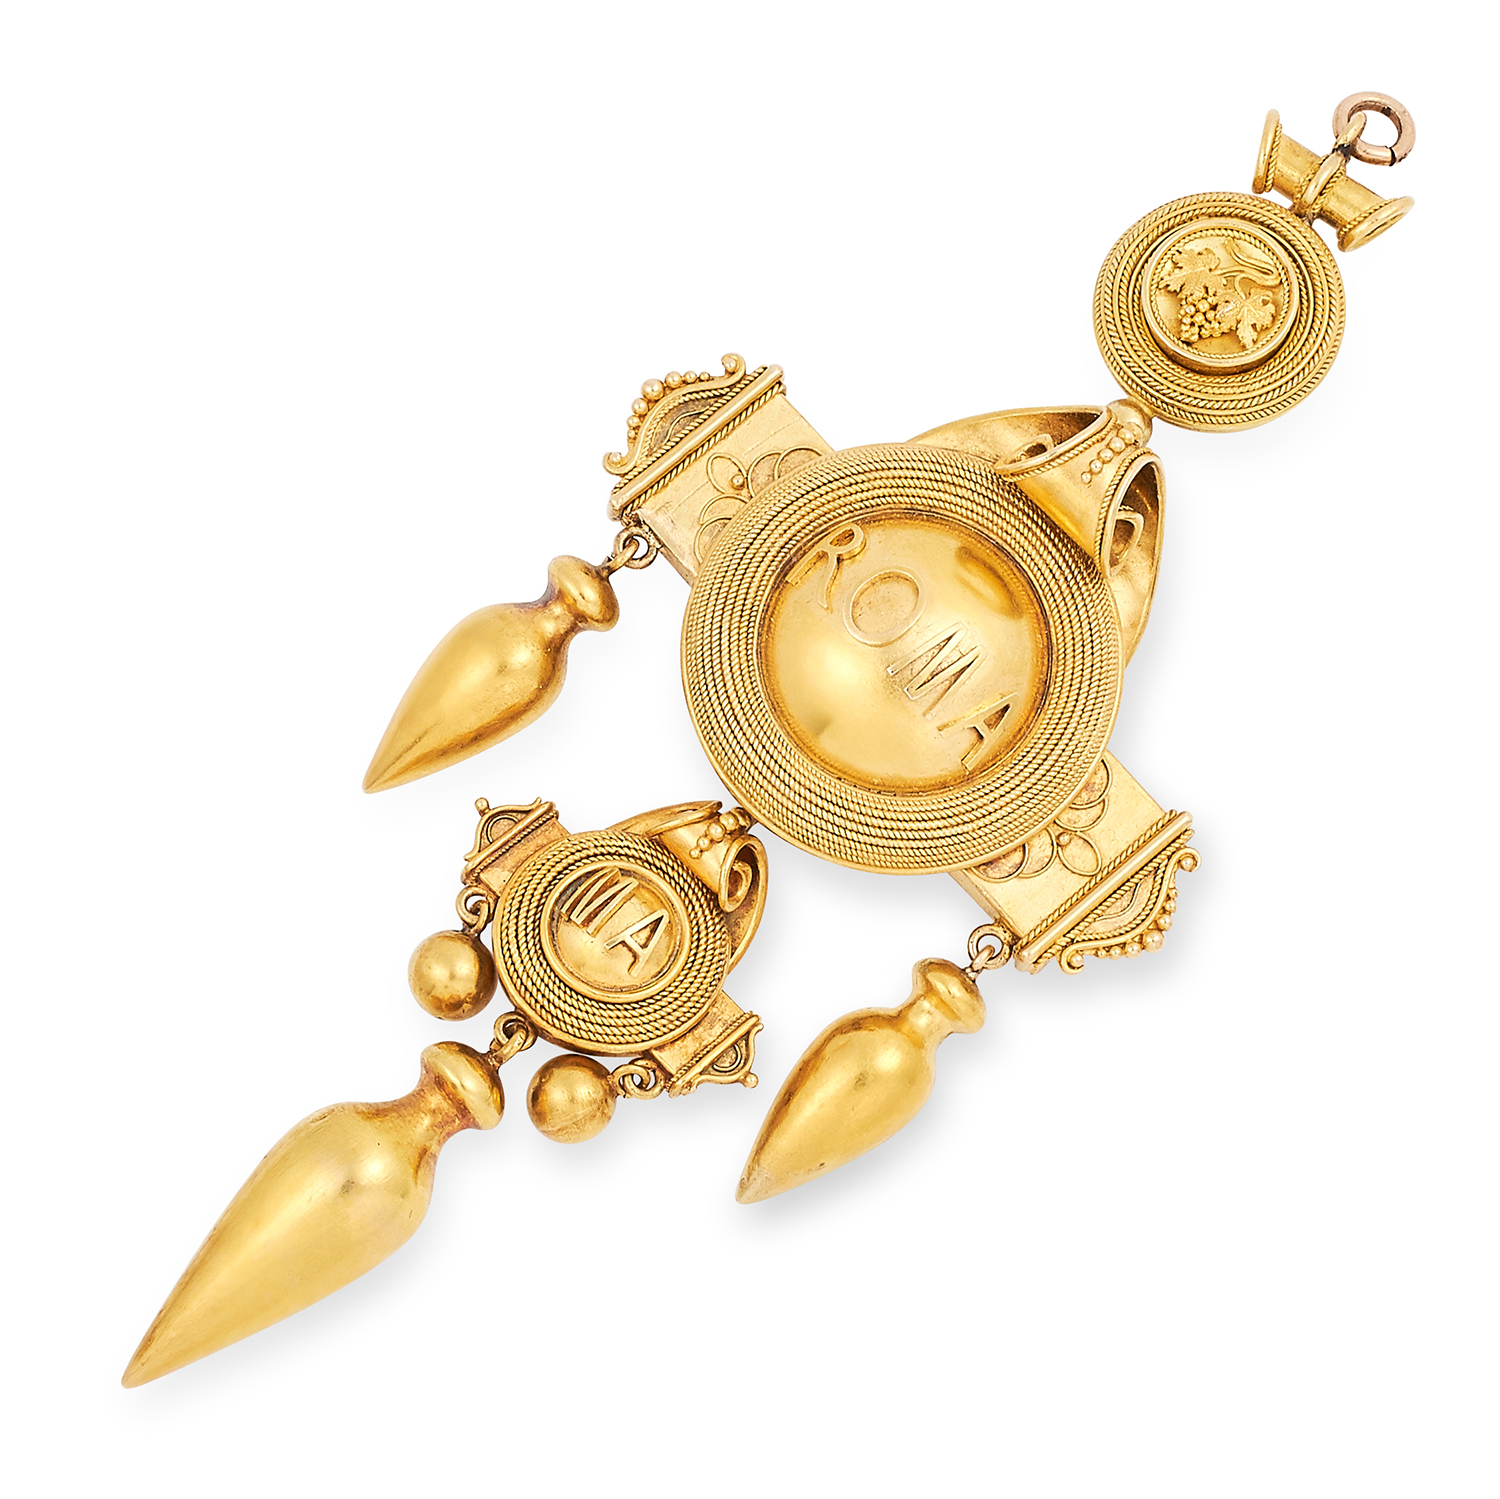 AN ANTIQUE GRAND TOUR PENDANT, 19TH CENTURY in Etruscan revival manner emblazoned ROMA with wirework